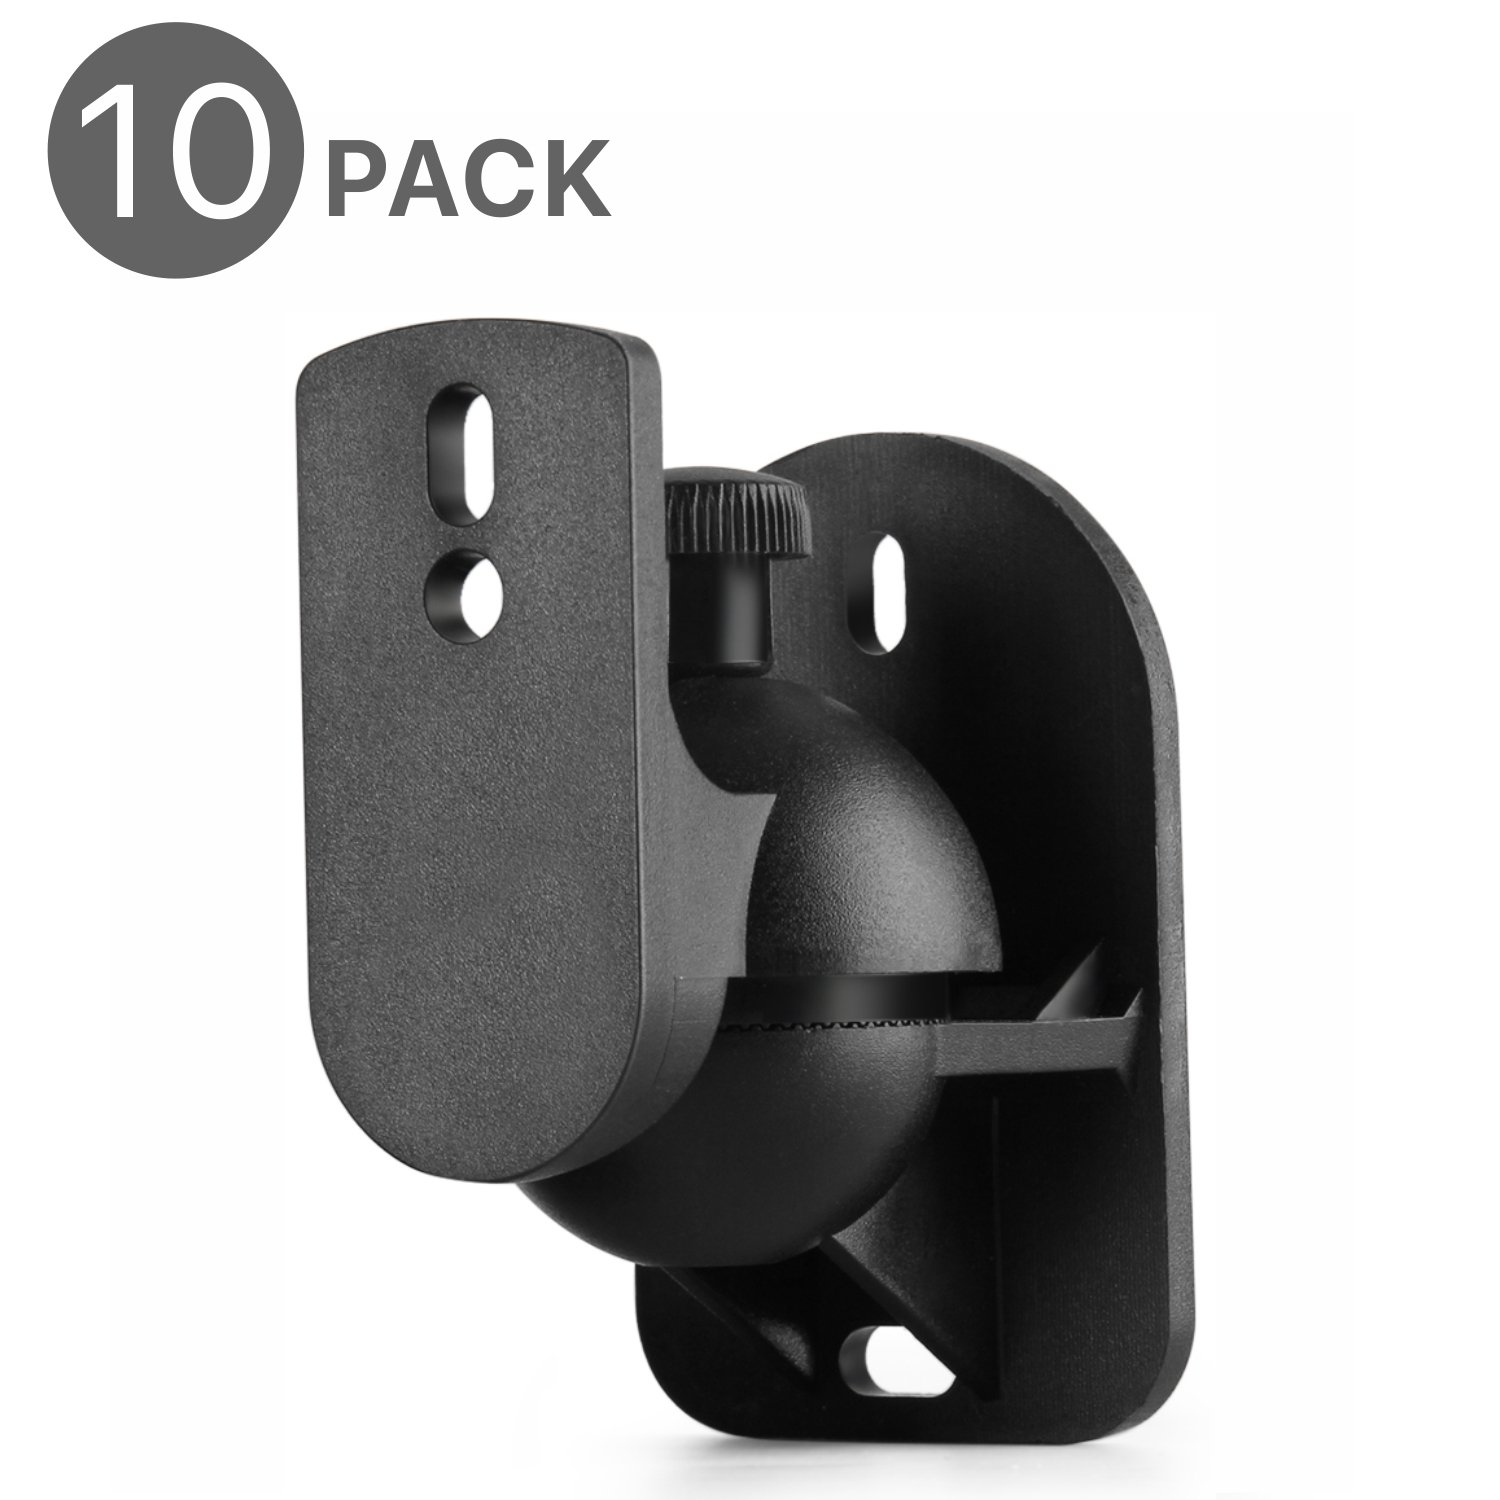 TNP Universal Satellite Speaker Wall Mount Bracket Ceiling Mount Clamp with Adjustable Swivel and Tilt Angle Rotation For Surround Sound System Satellite Speakers - 10 Pack, Black by TNP Products